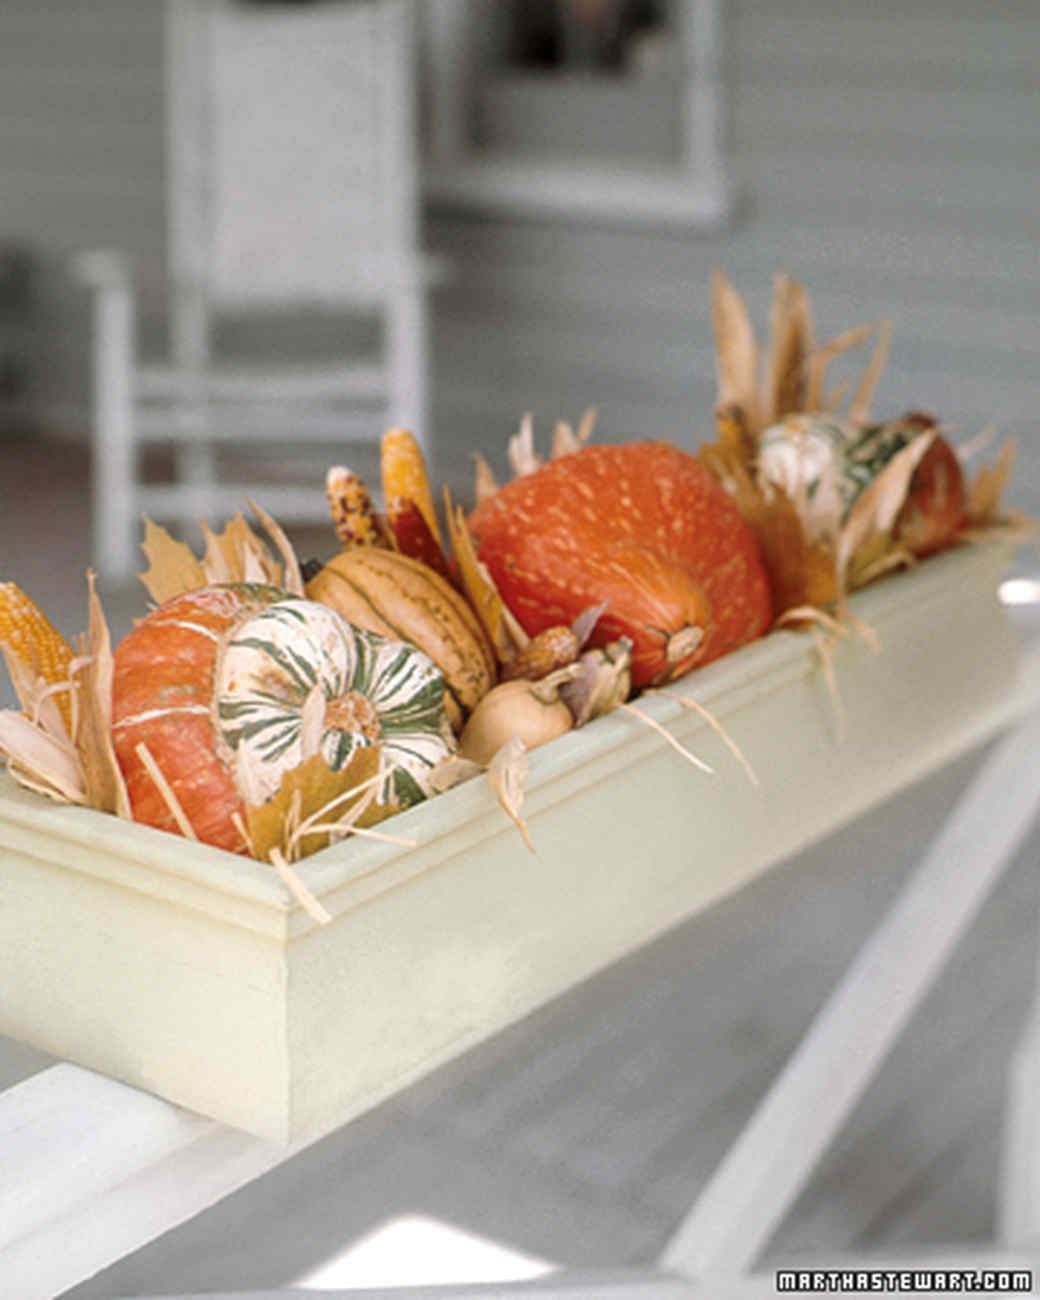 Autumn Planters Martha Stewart Living When Cold Weather - Delicate fall decor ideas for this autumn